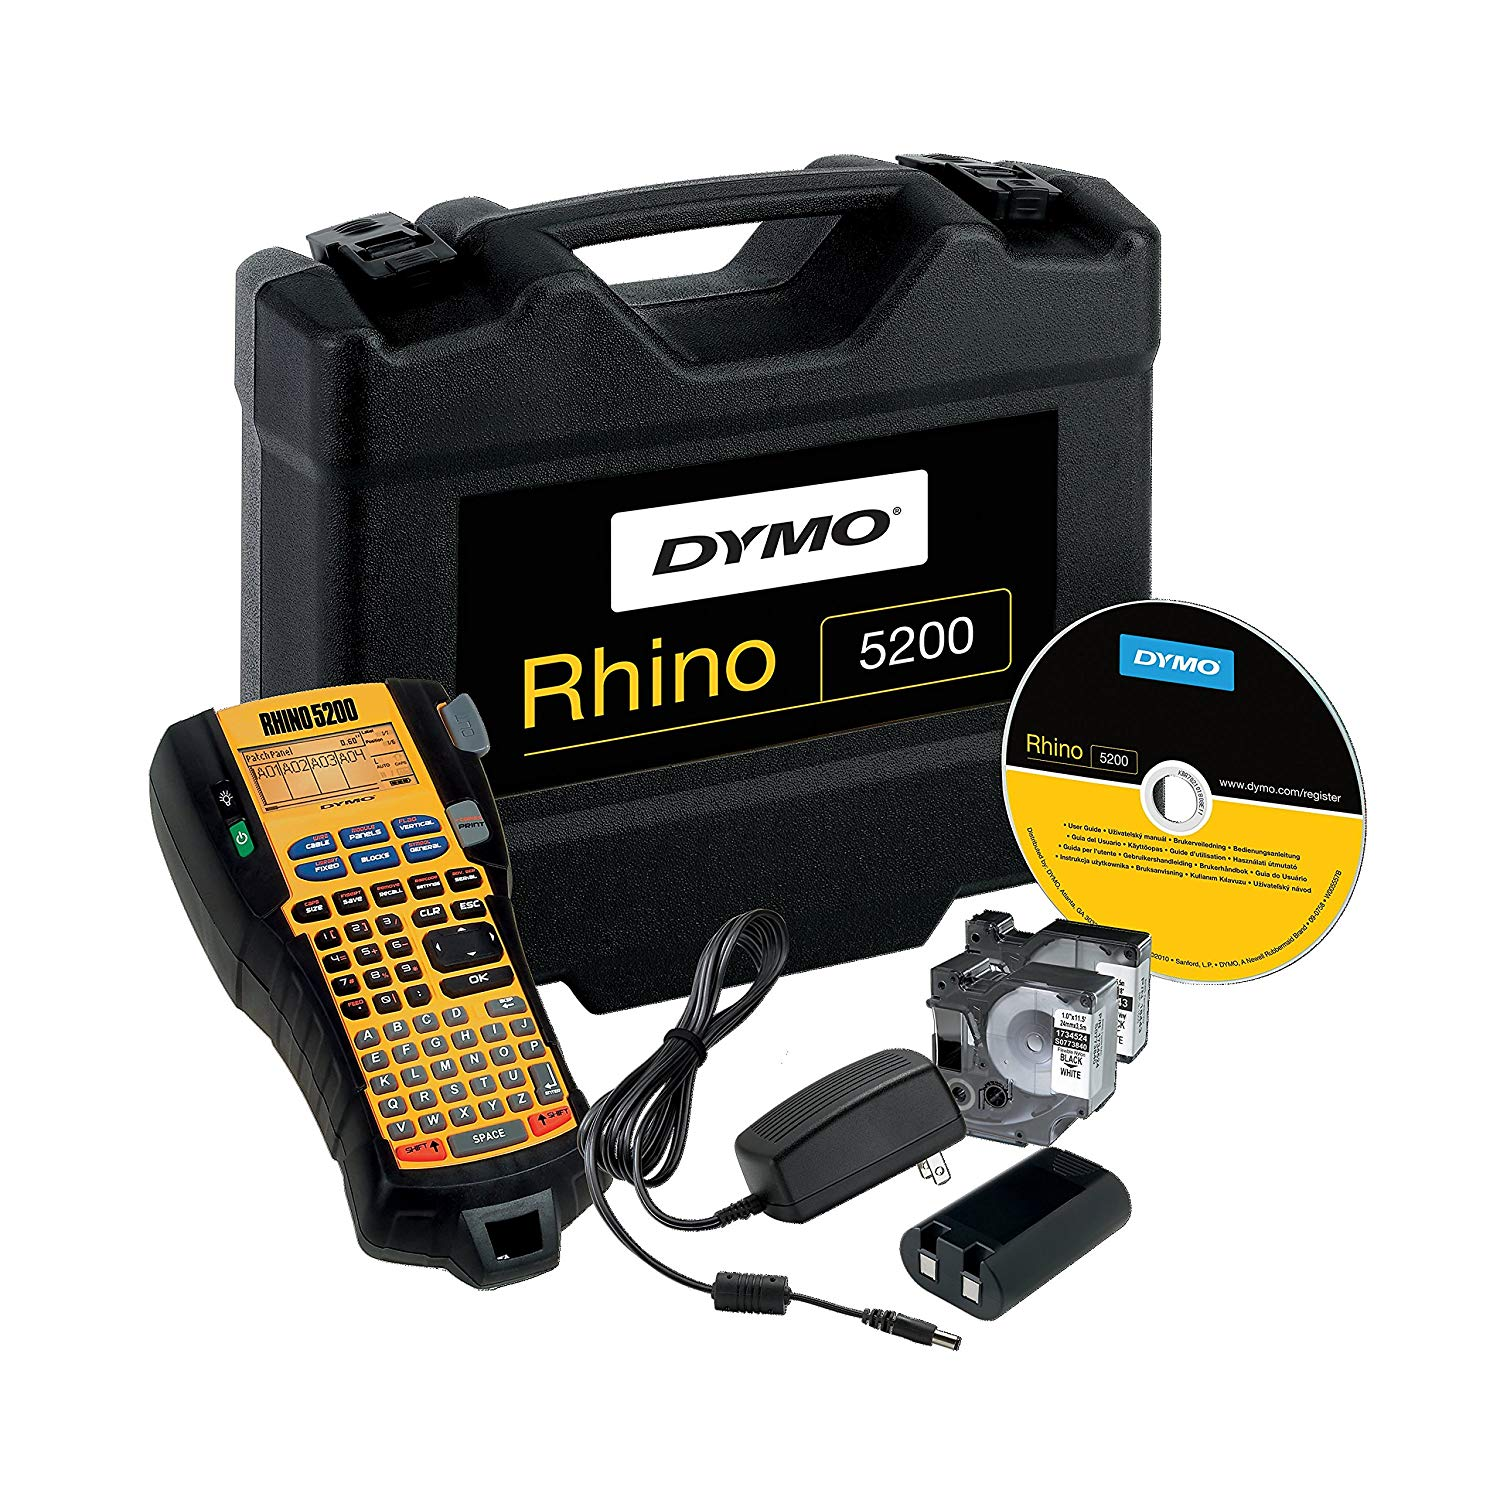 Dymo S0841390 (S0841400) Rhino 5200 Professional Label Printer Kit Case